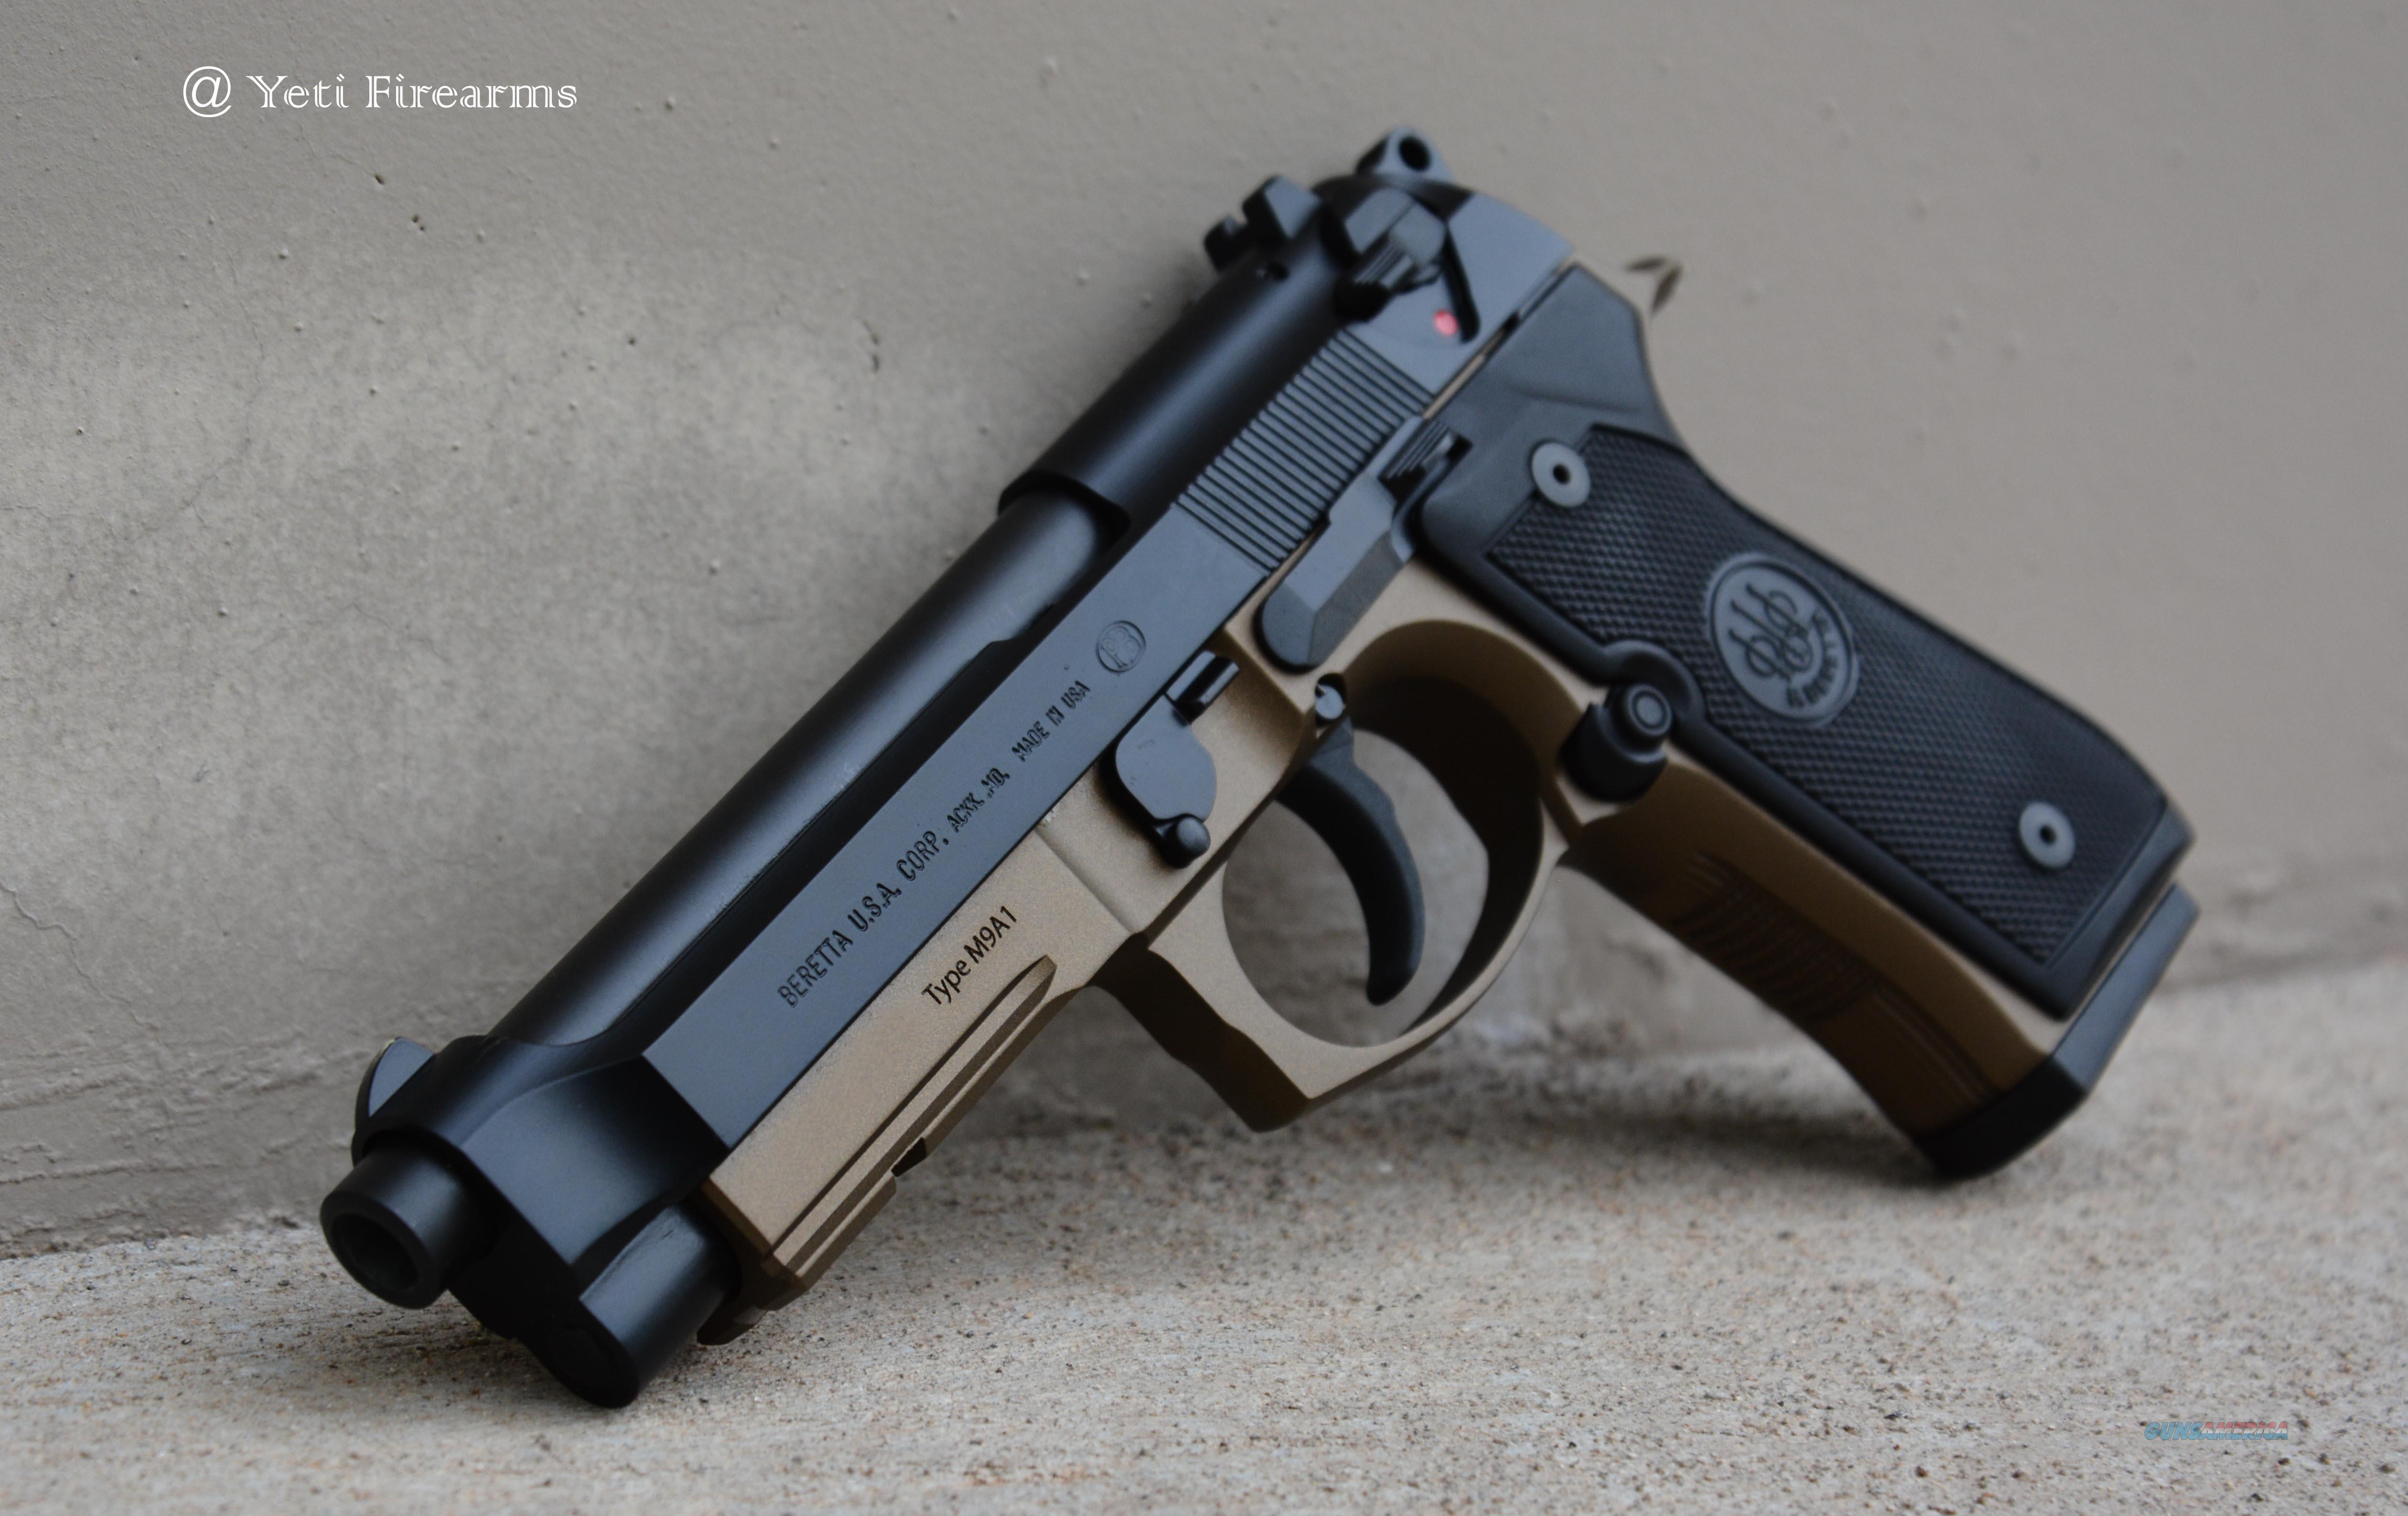 X-Werks Burnt Bronze Beretta M9A1 9mm 15rnd 92 M9  Guns > Pistols > Beretta Pistols > Model 92 Series